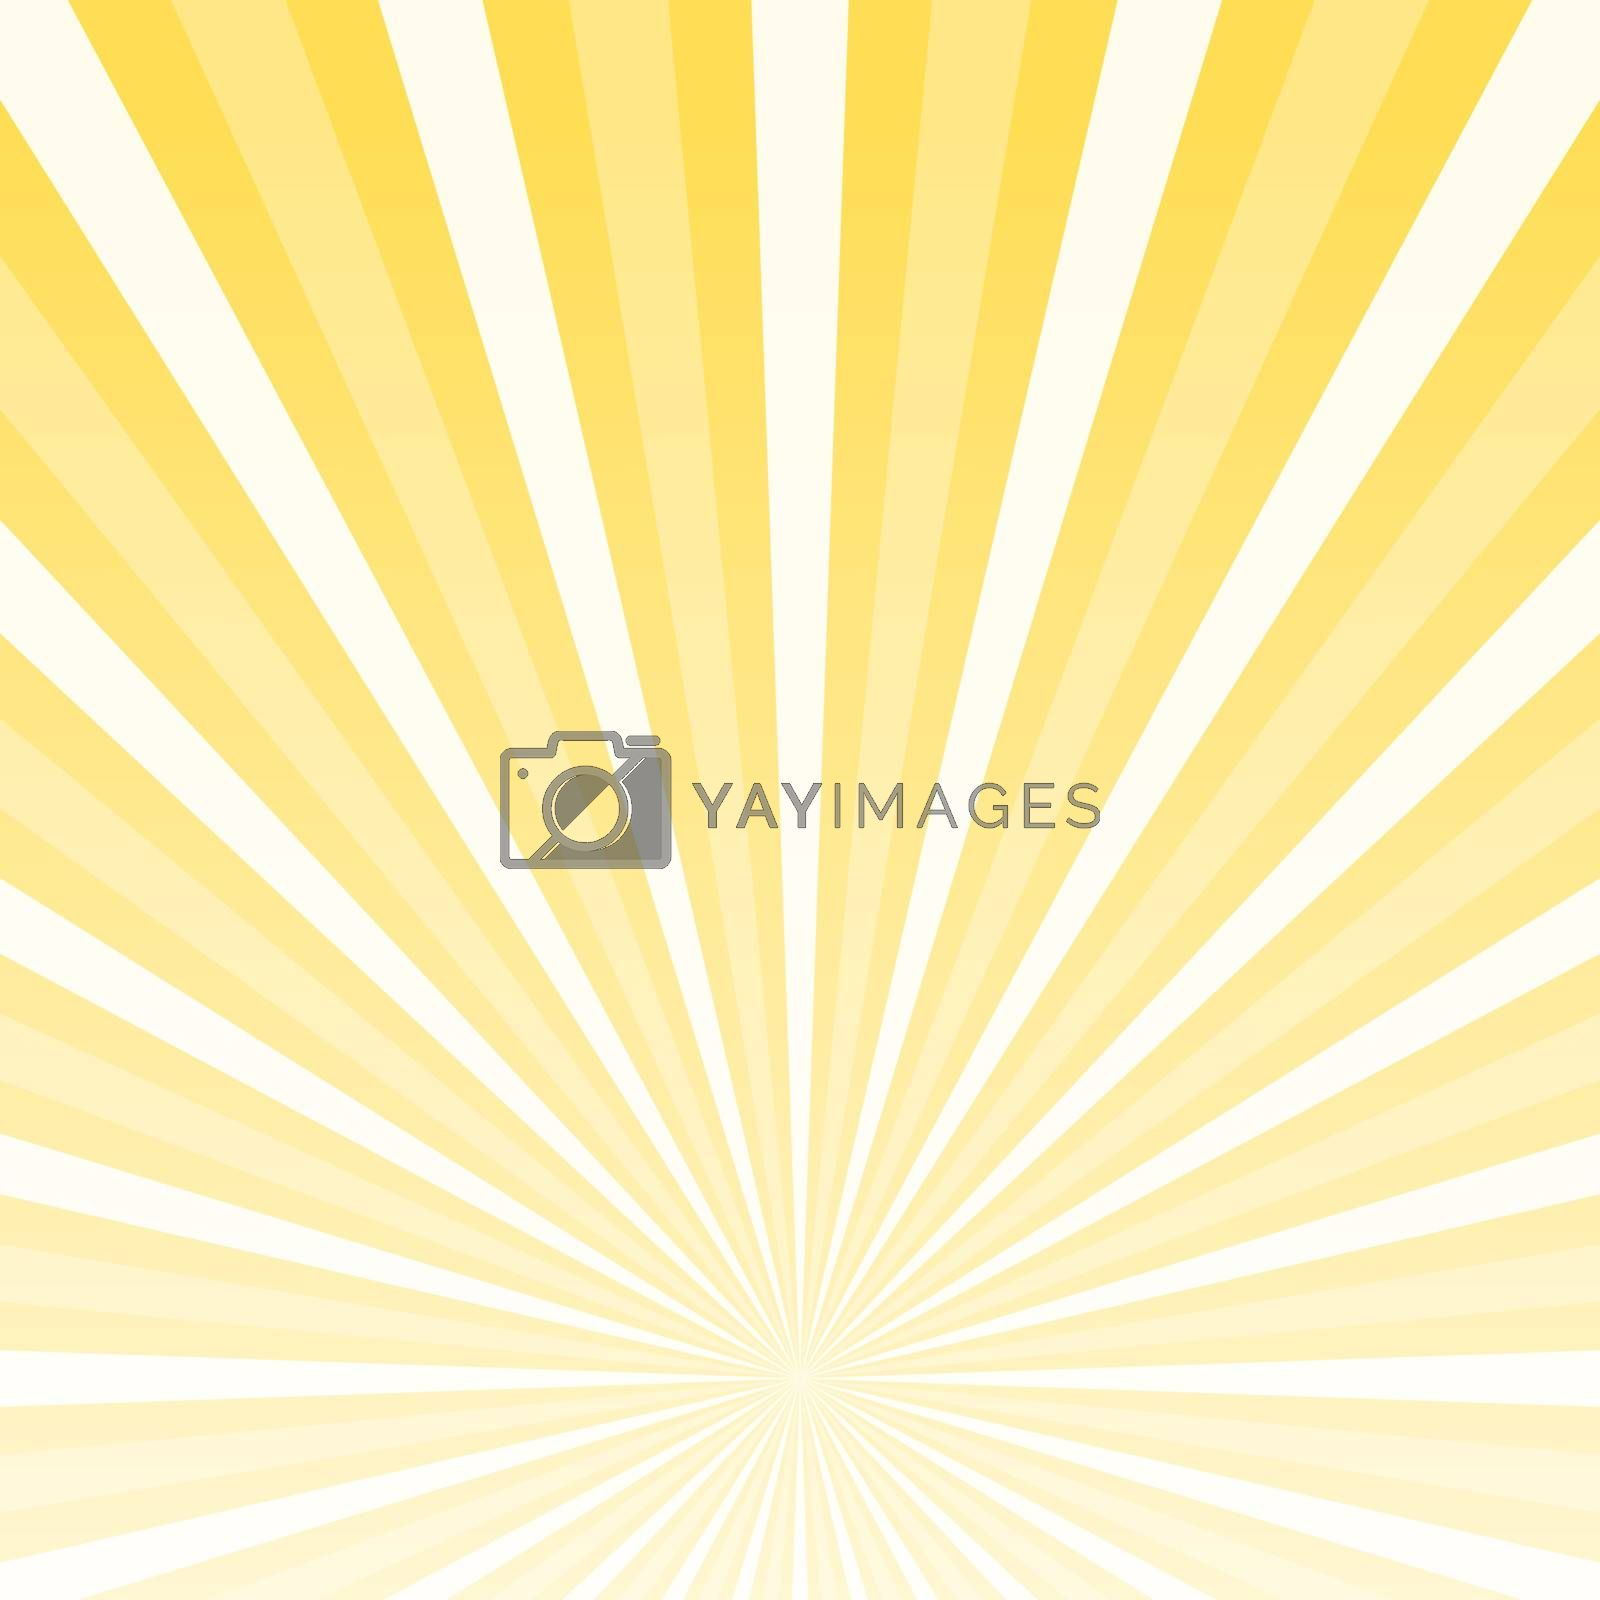 Striped Yellow and White Background with lowered horizon